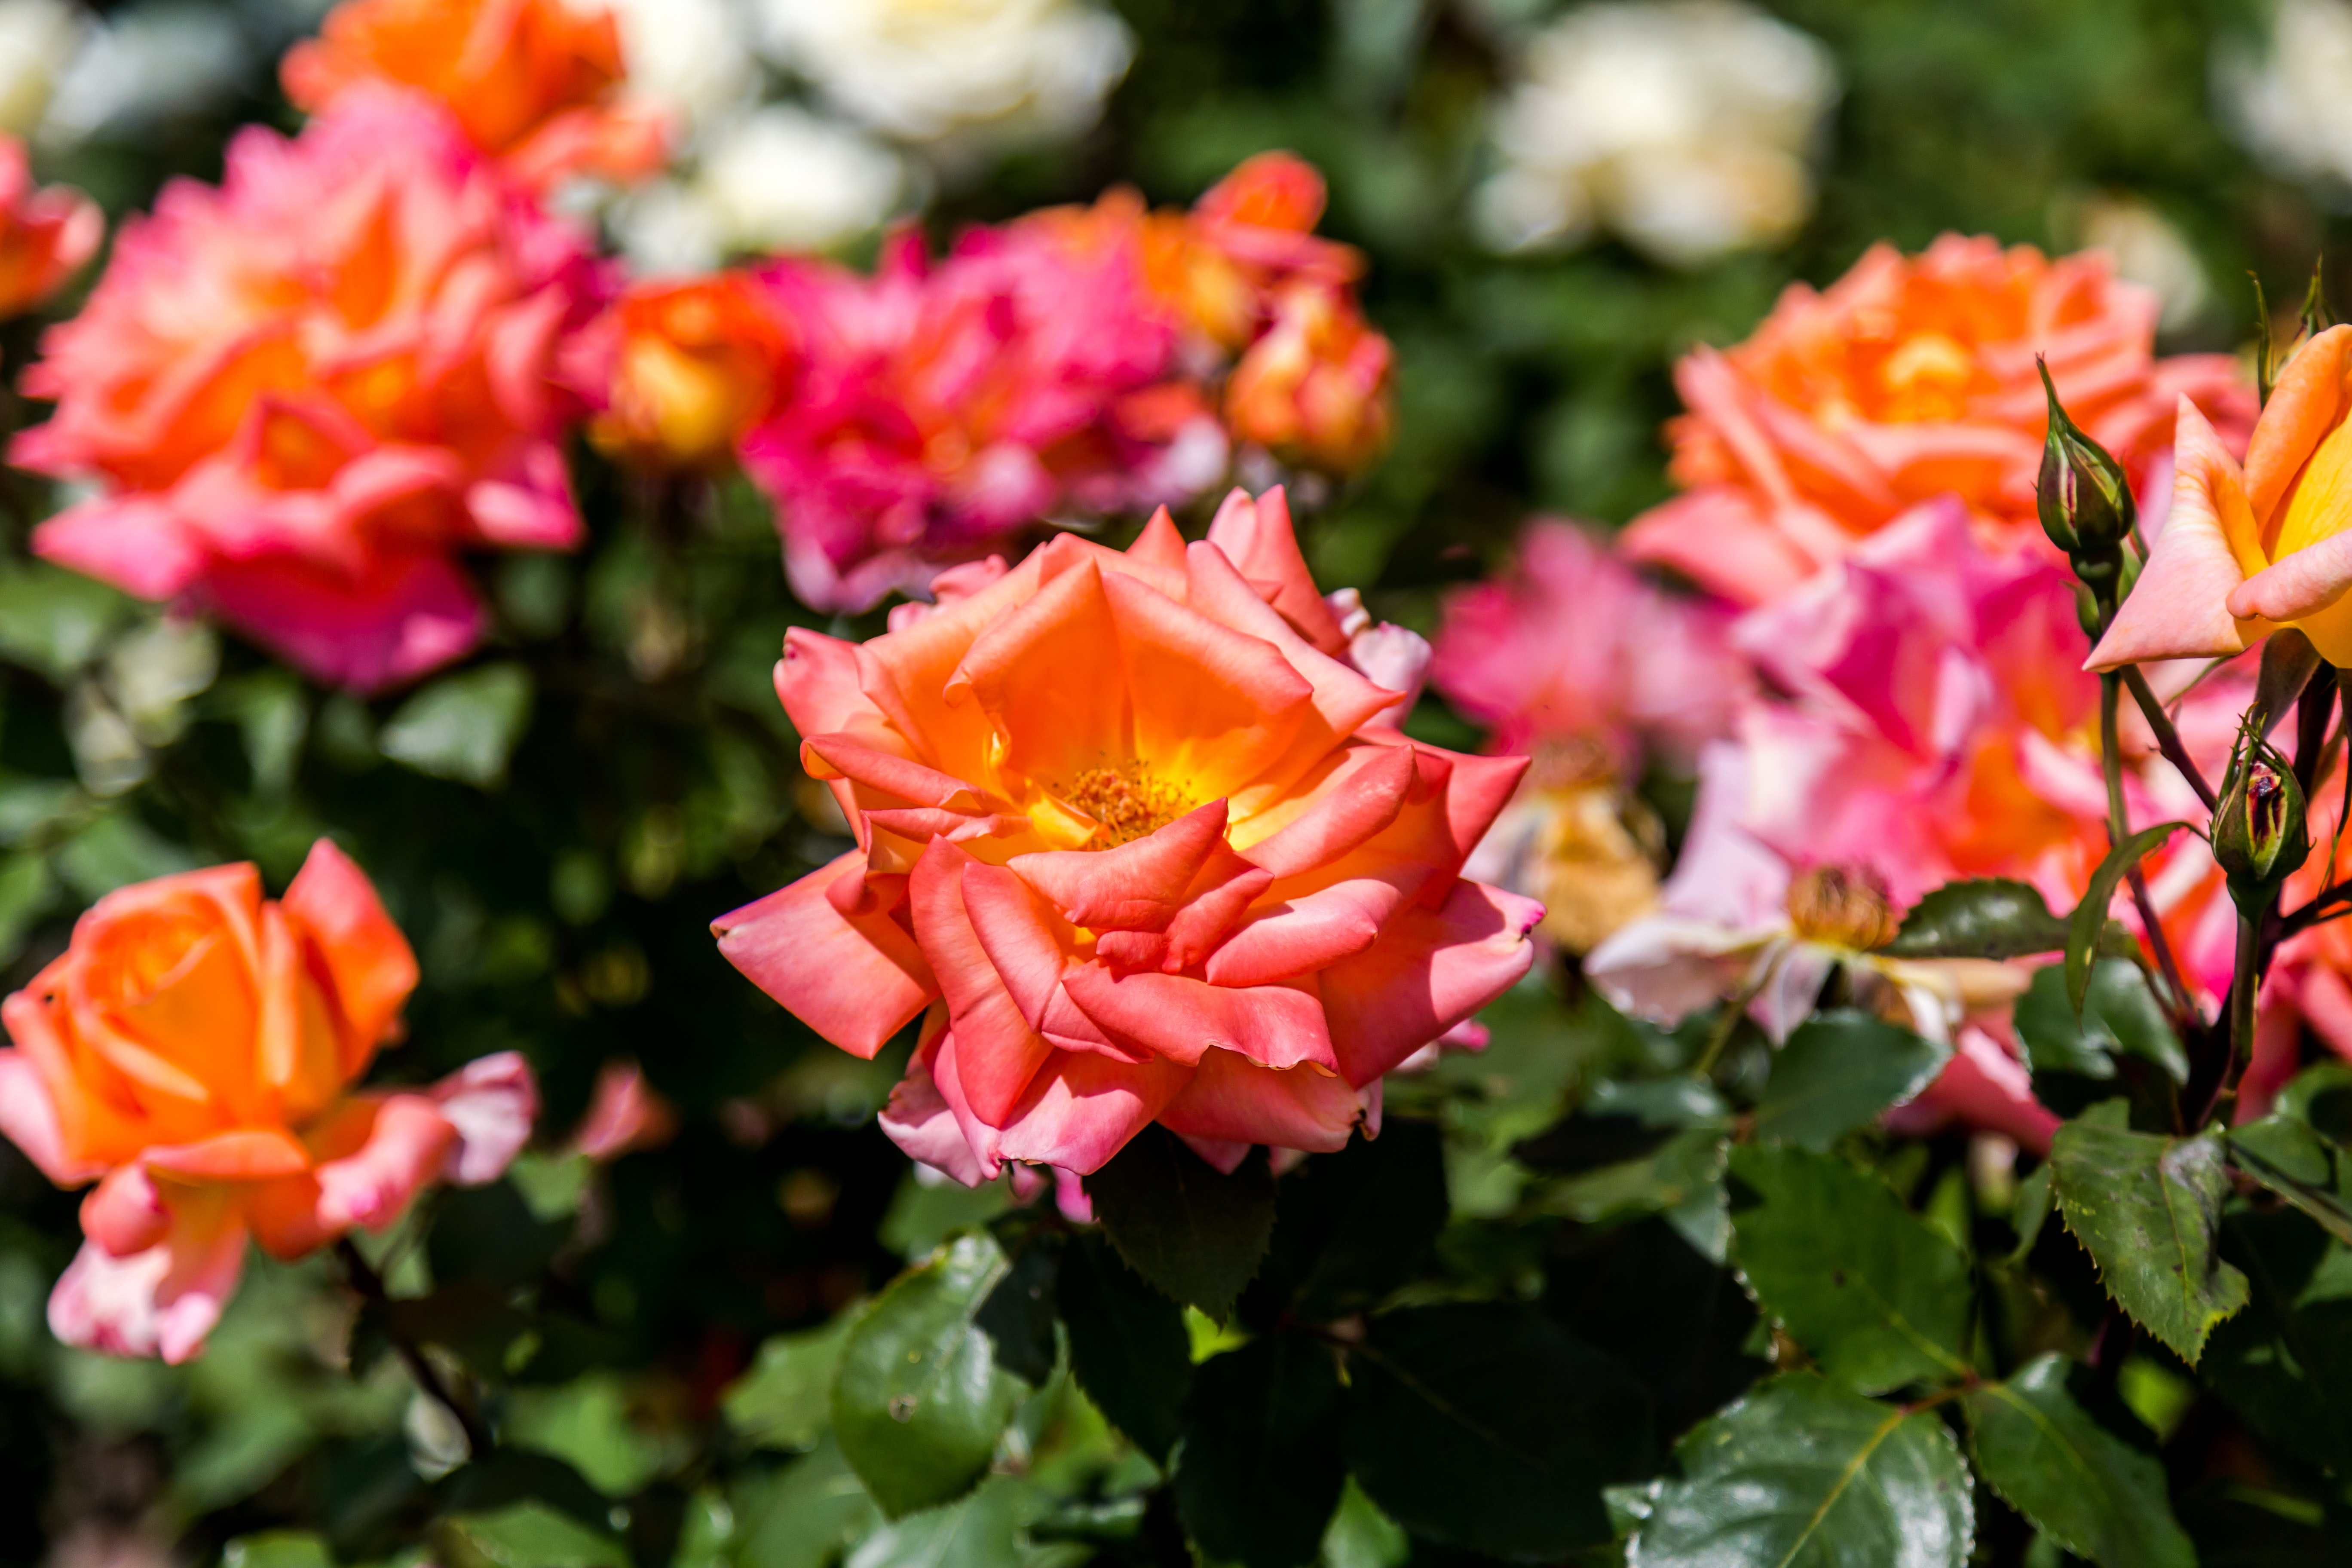 Orange and pink roses blossoming in a botanical garden